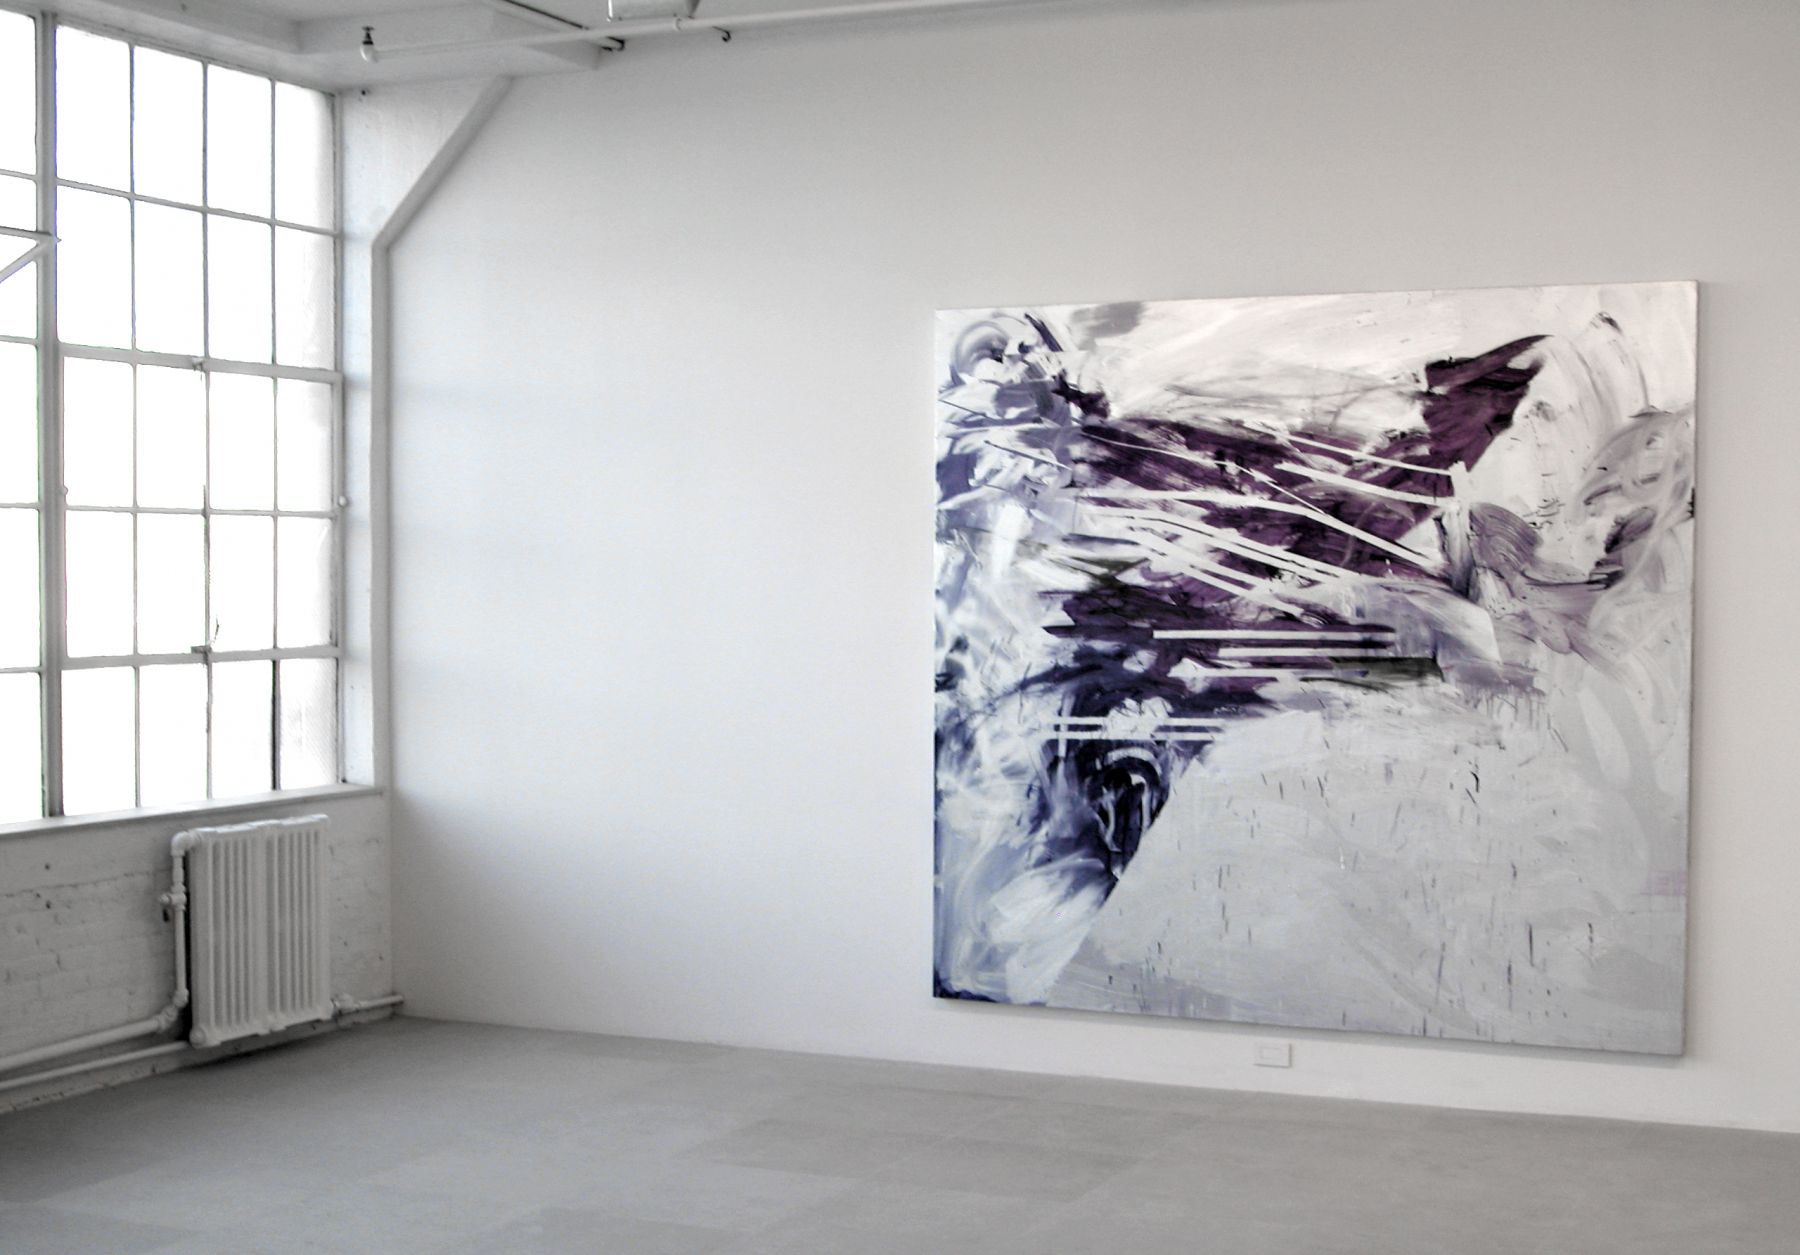 Jacqueline Humphries, Installation view, Greene Naftali, New York, 2006